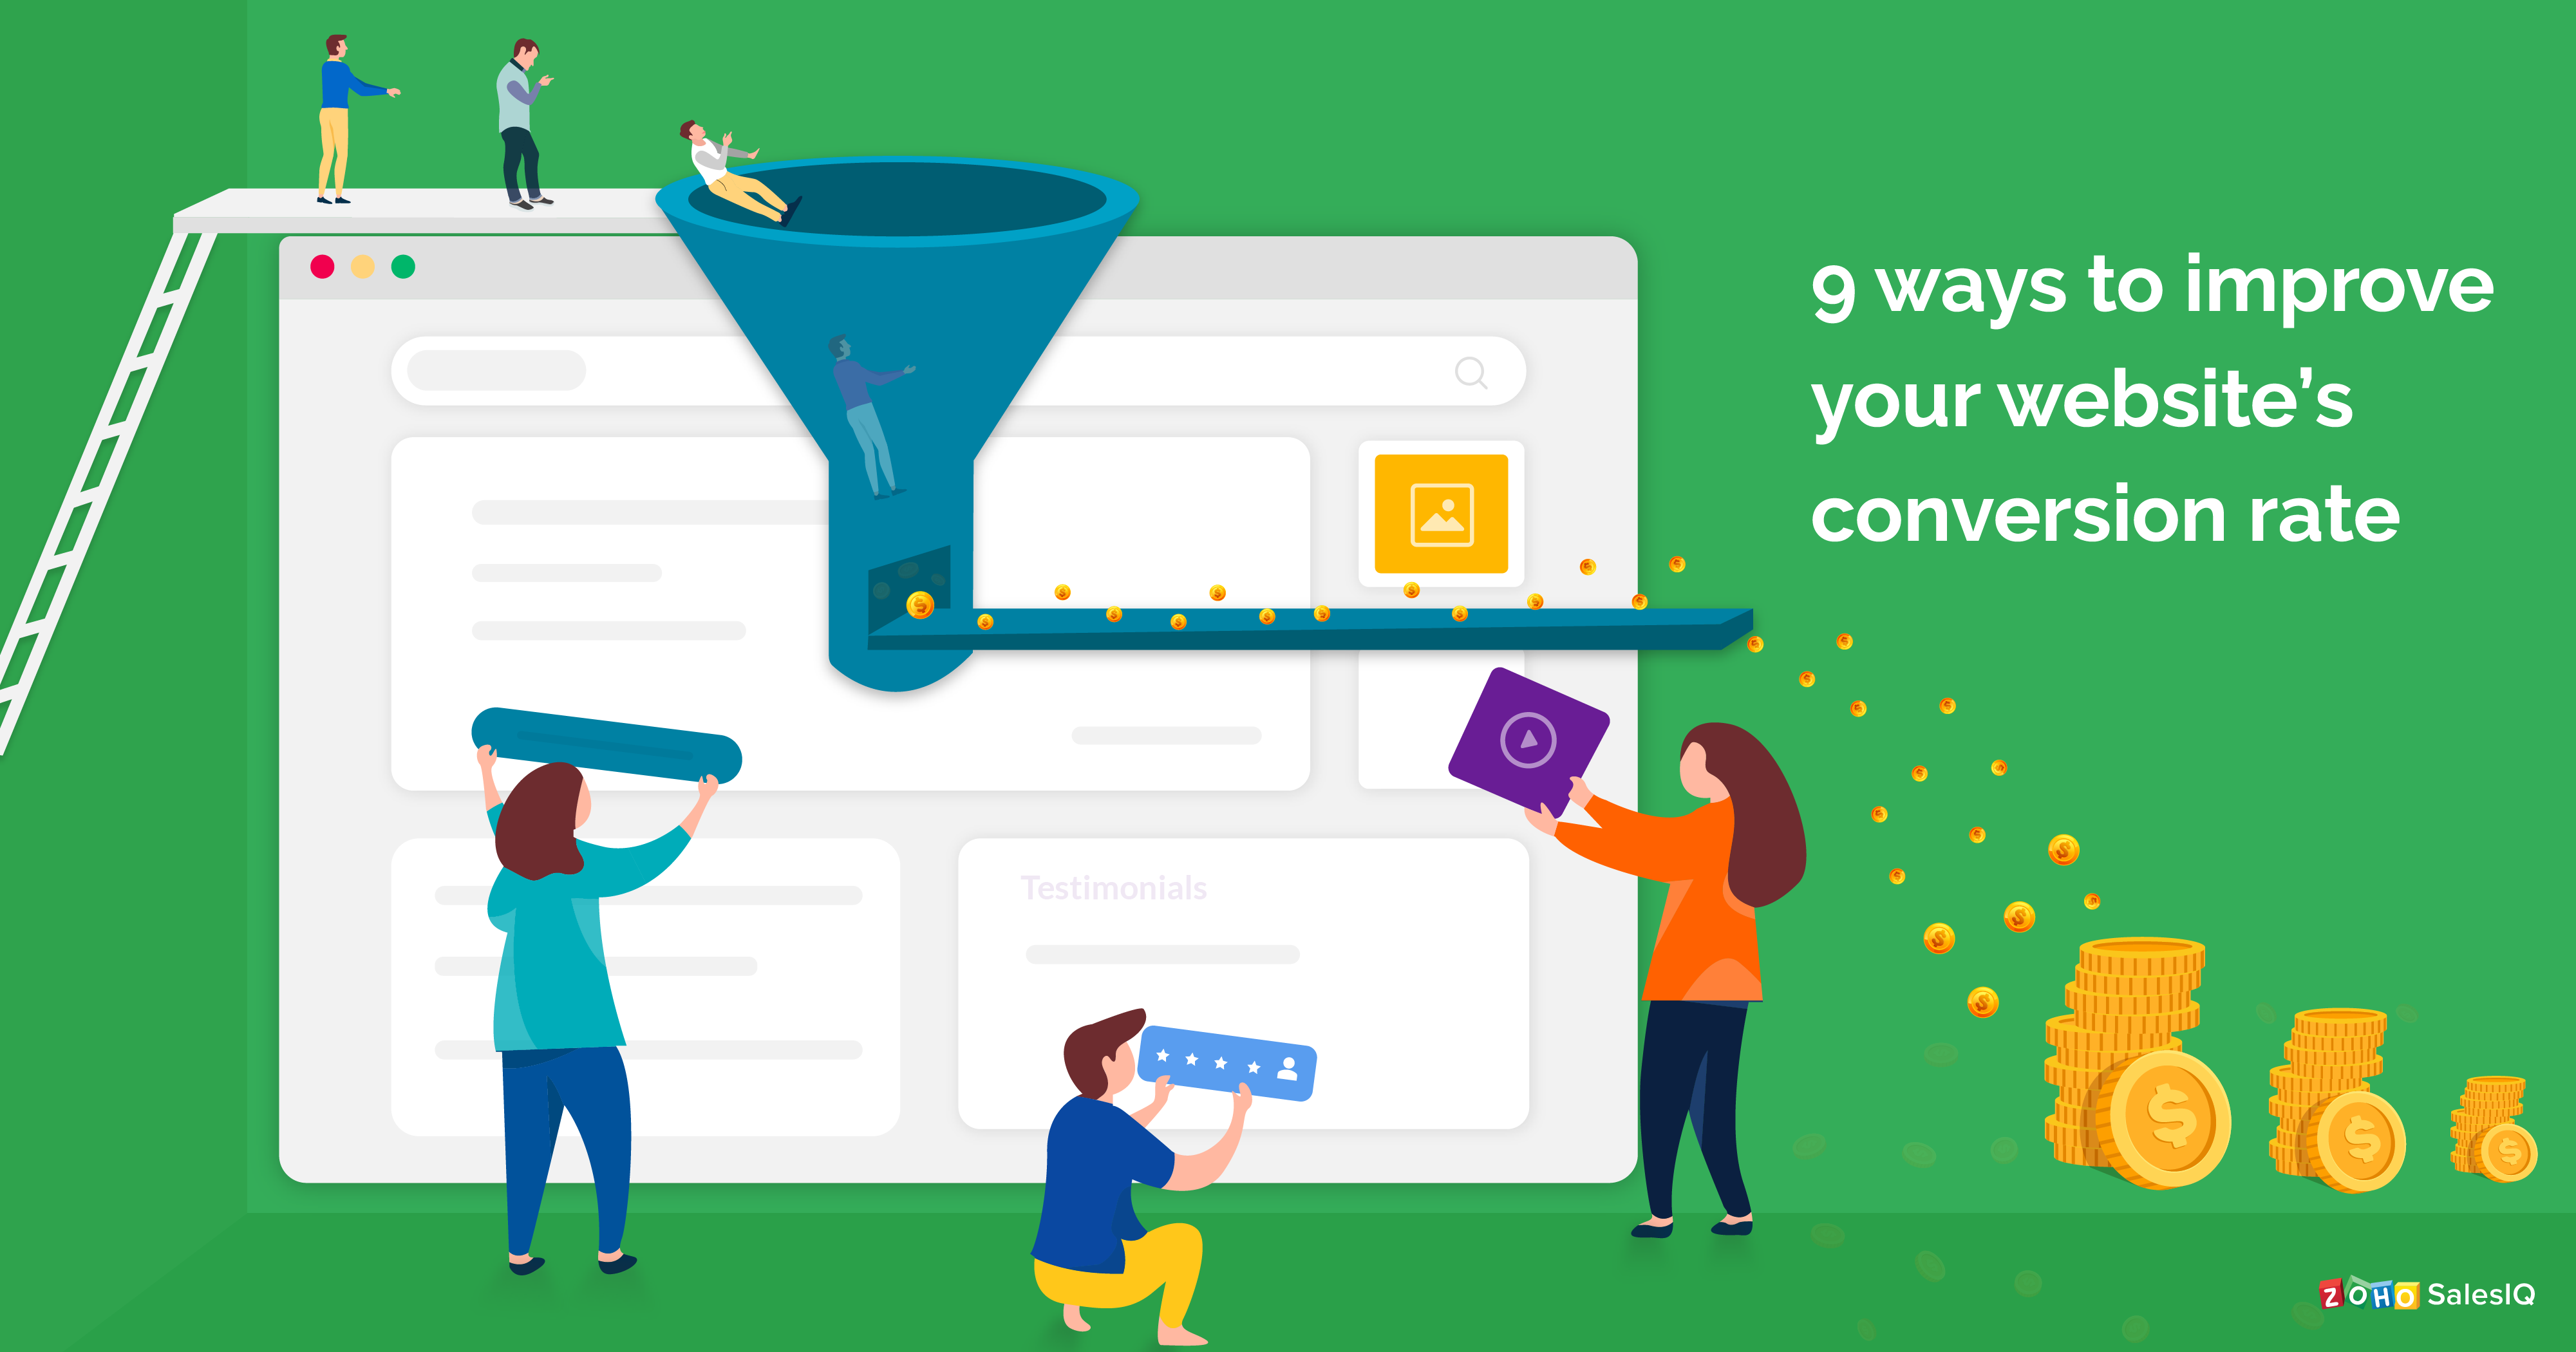 9 ways to increase your website conversion rate